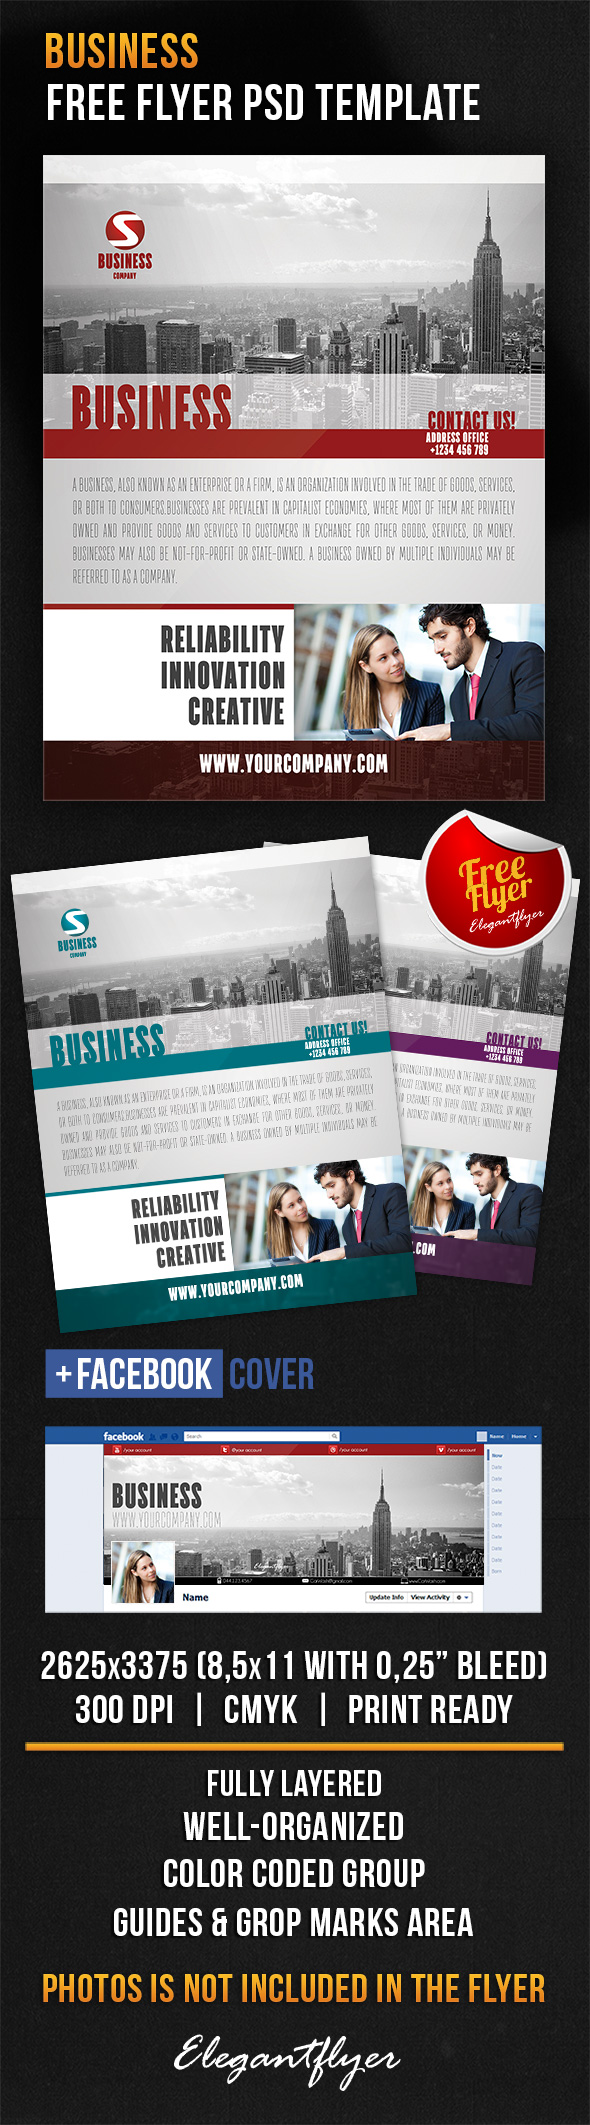 business flyer psd template facebook cover business flyer psd template facebook cover elegantflyer